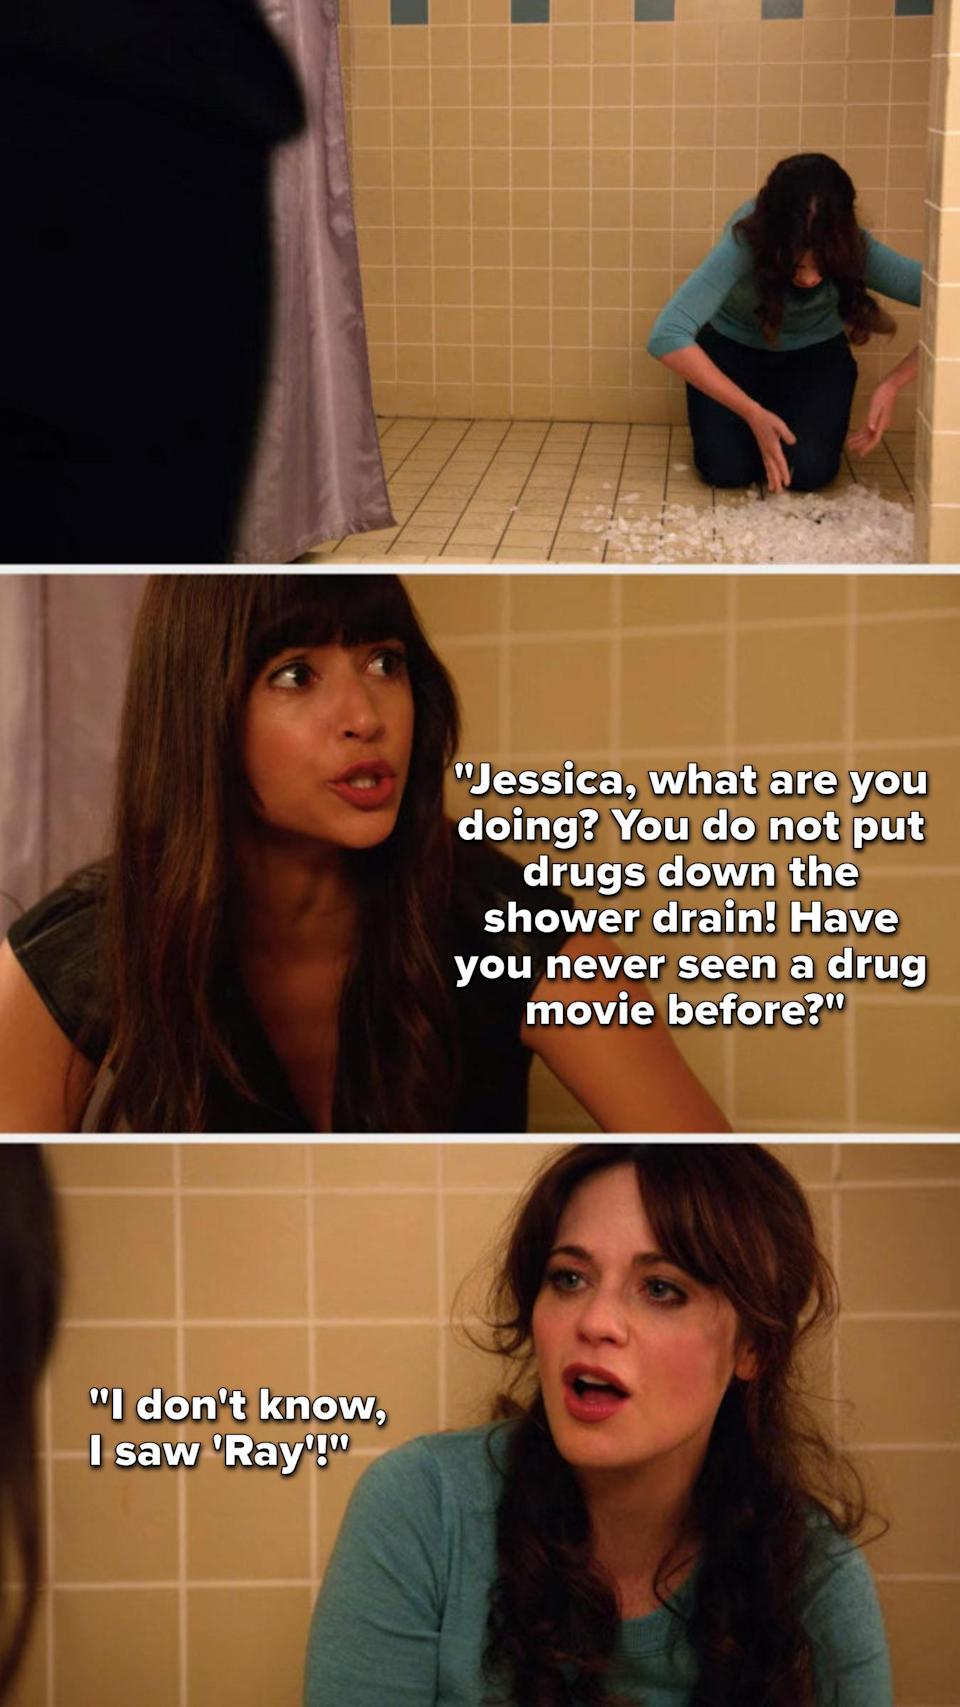 Cece walks in on Jess putting meth down the shower drain and says, Jessica, what are you doing, you do not put drugs down the shower drain, have you never seen a drug movie before, and Jess says, I don't know, I saw Ray